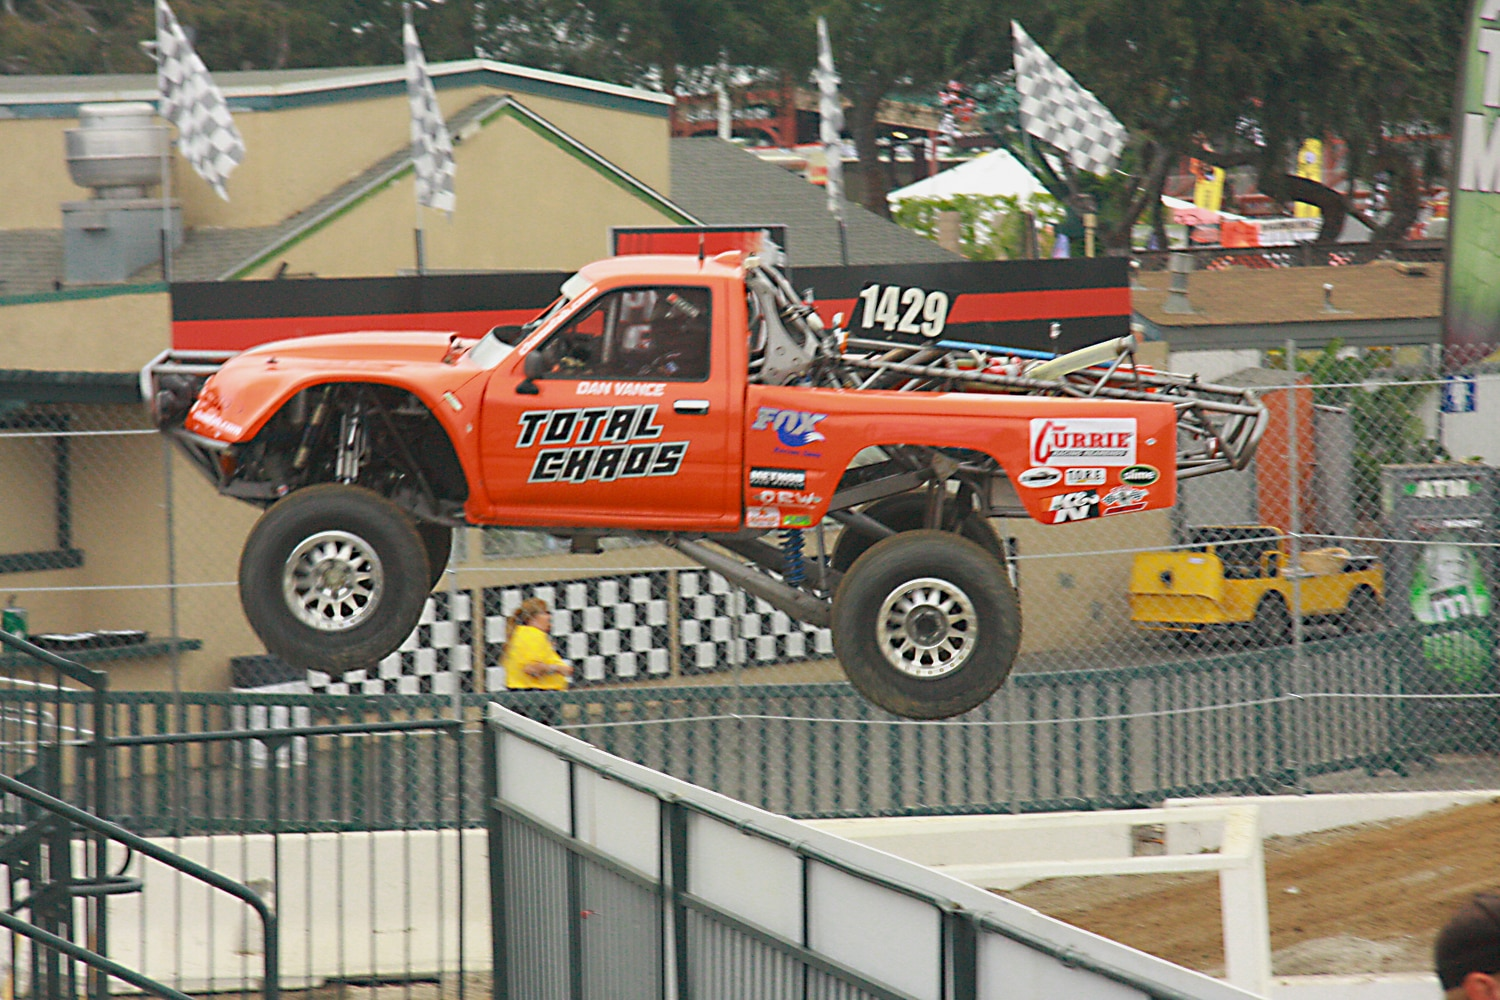 Off Road Race Truck   19  Dan Vance Total Chaos Toyota pickup side